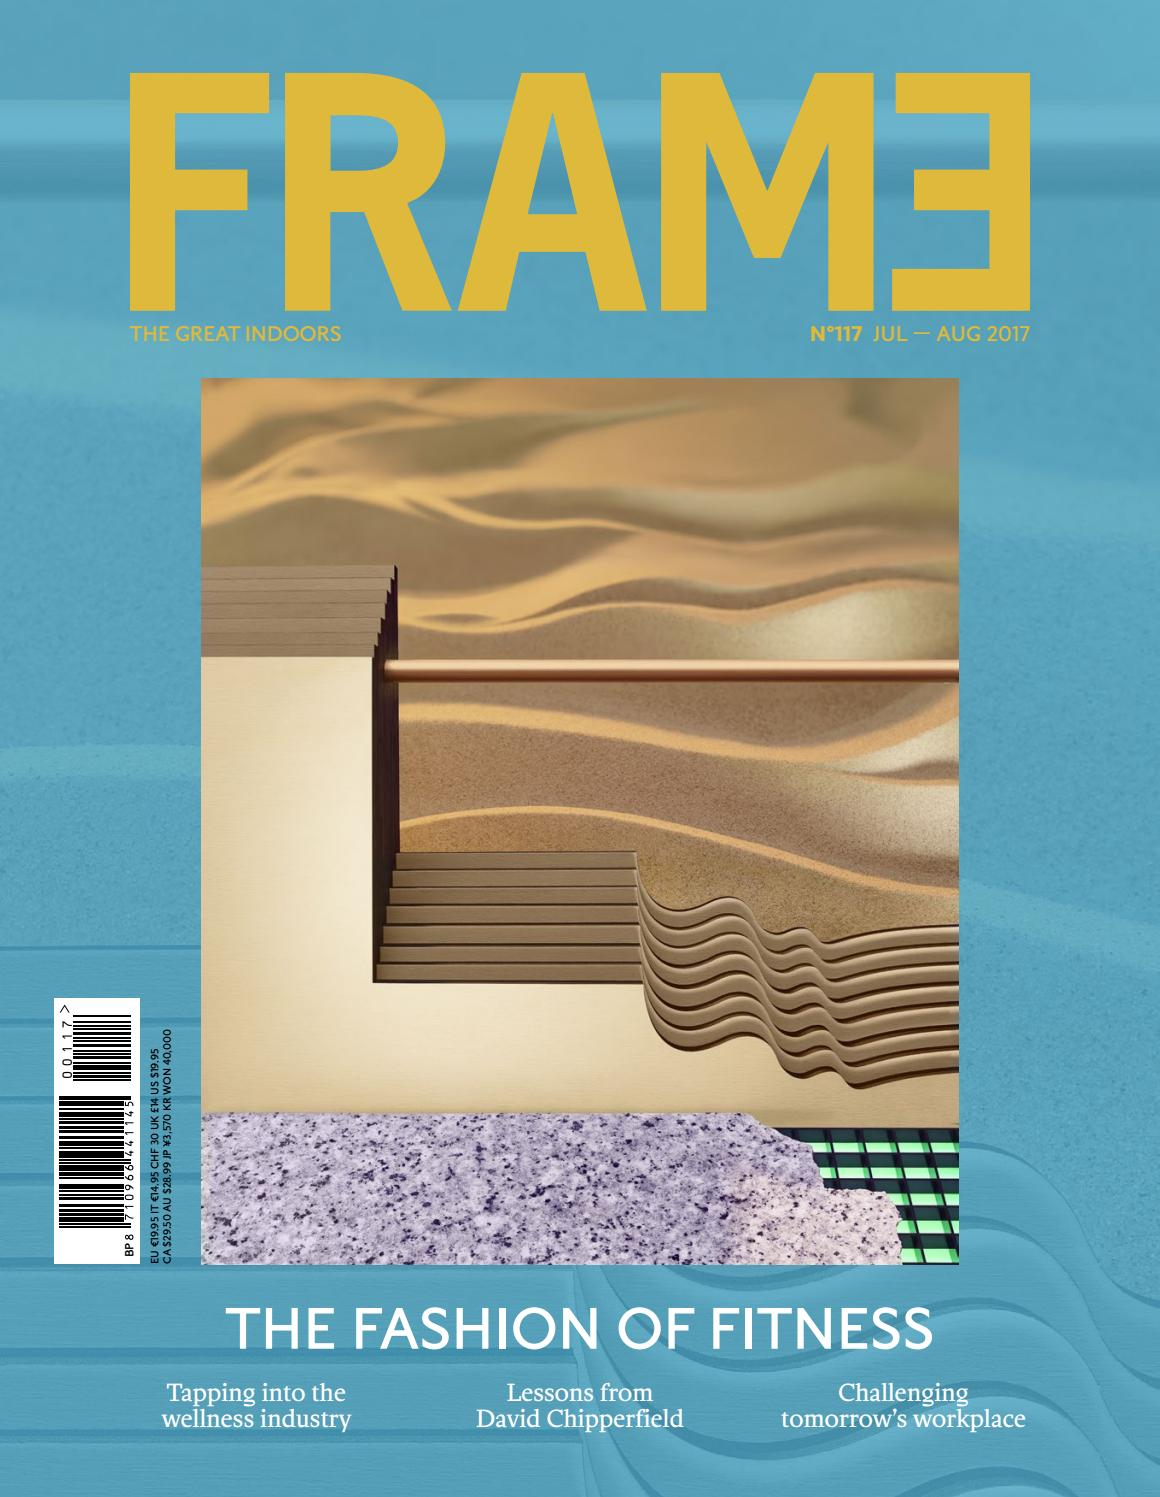 PREVIEW Frame Magazine #117 - Jul/Aug 2017 by Frame Publishers - issuu